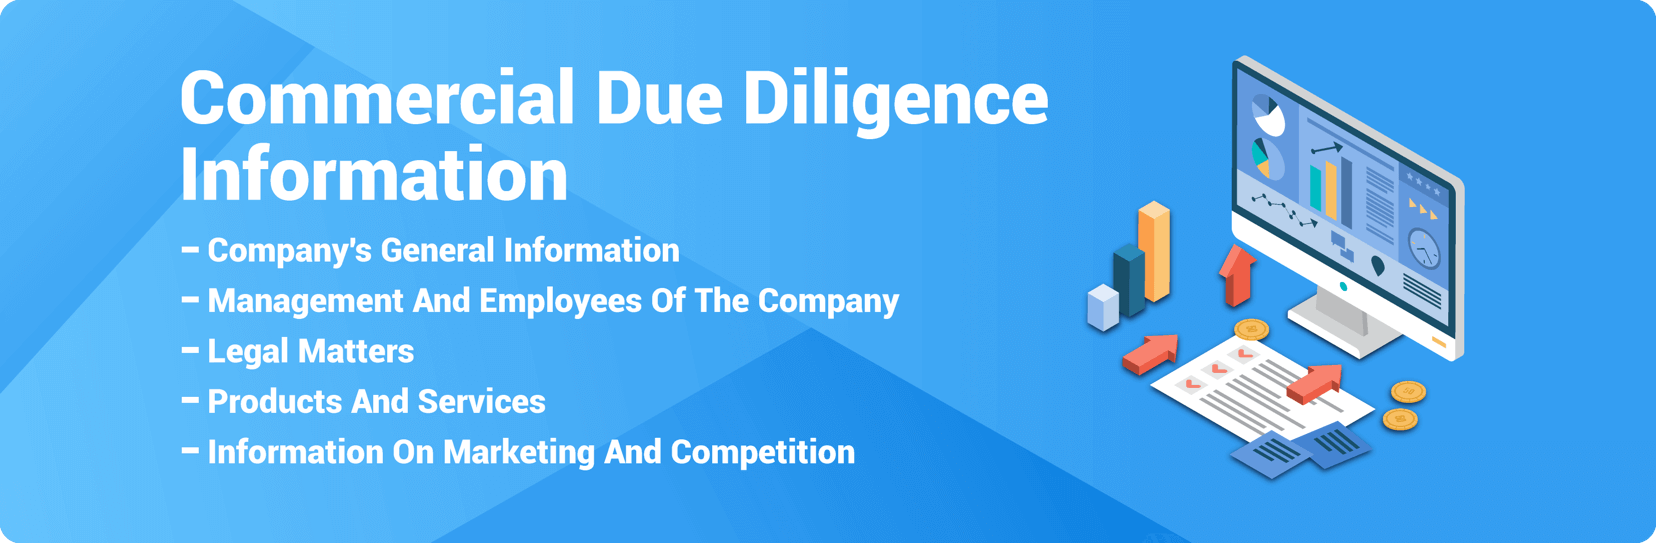 Commercial Due Diligence Information